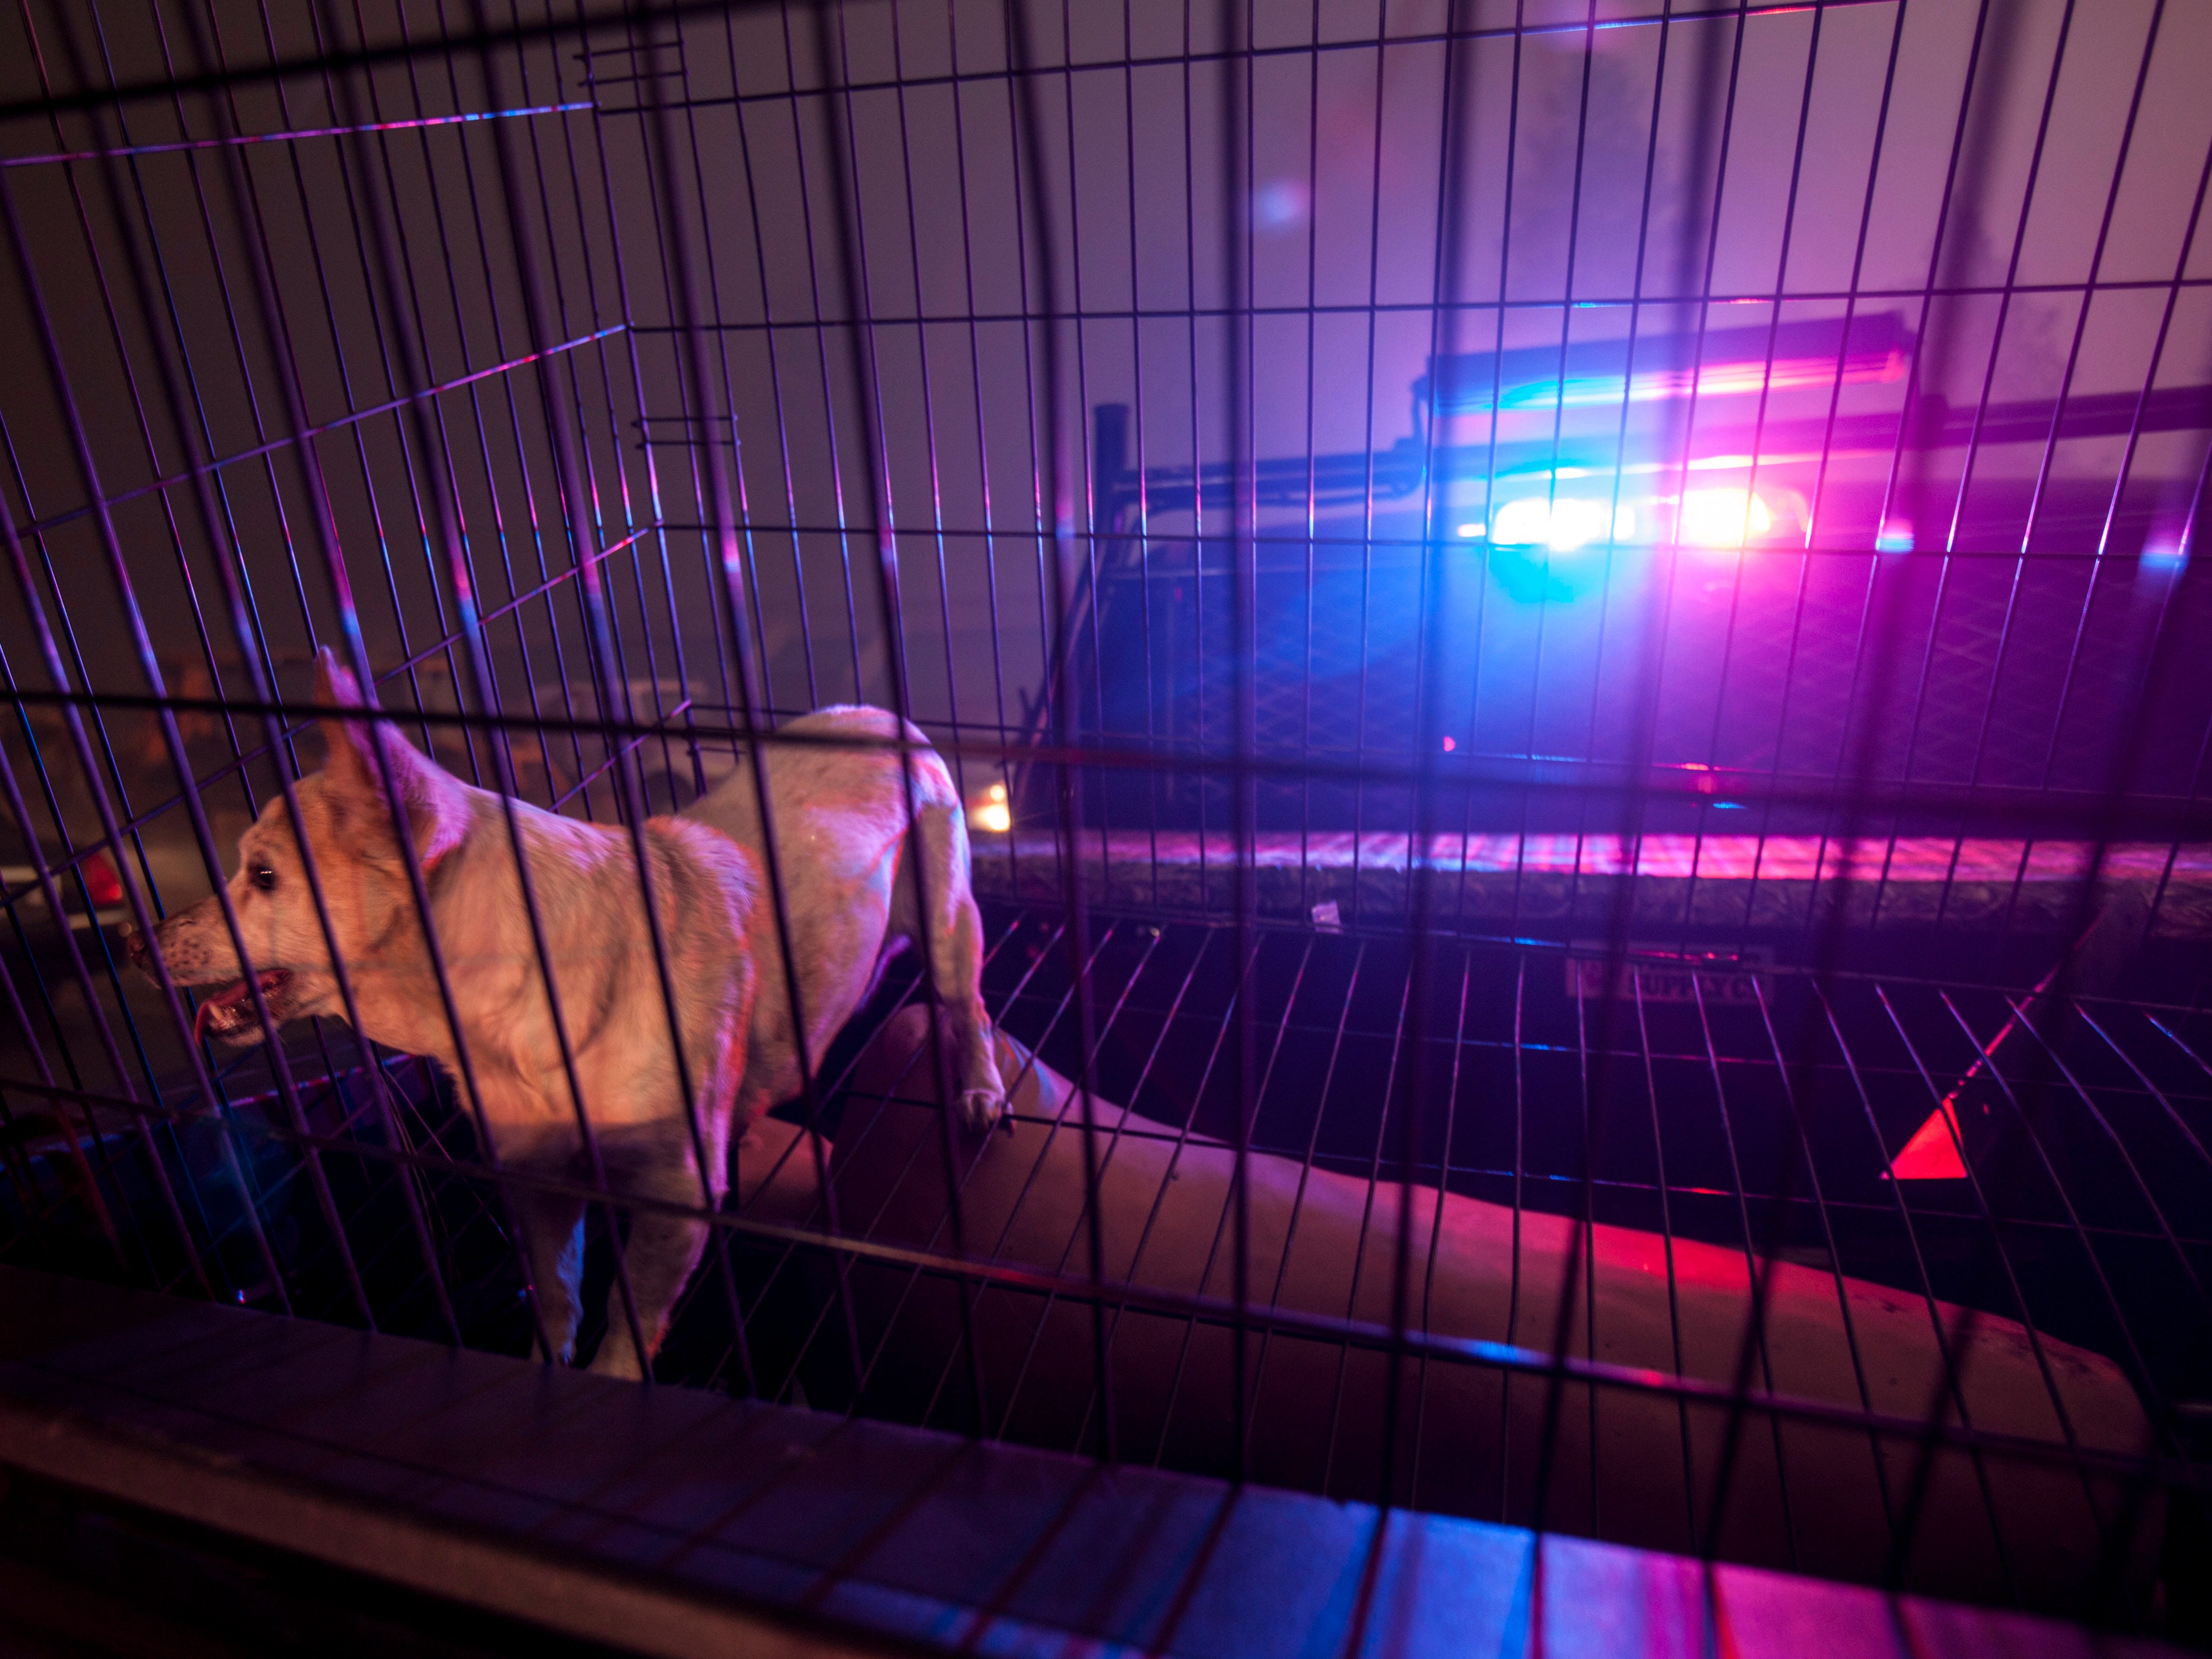 One of the dogs rescued by Redding, Calif. police sits in a cage as the Camp Fire burns out of control through Paradise, fueled by high winds in Butte County, Calif., Nov. 8, 2018.